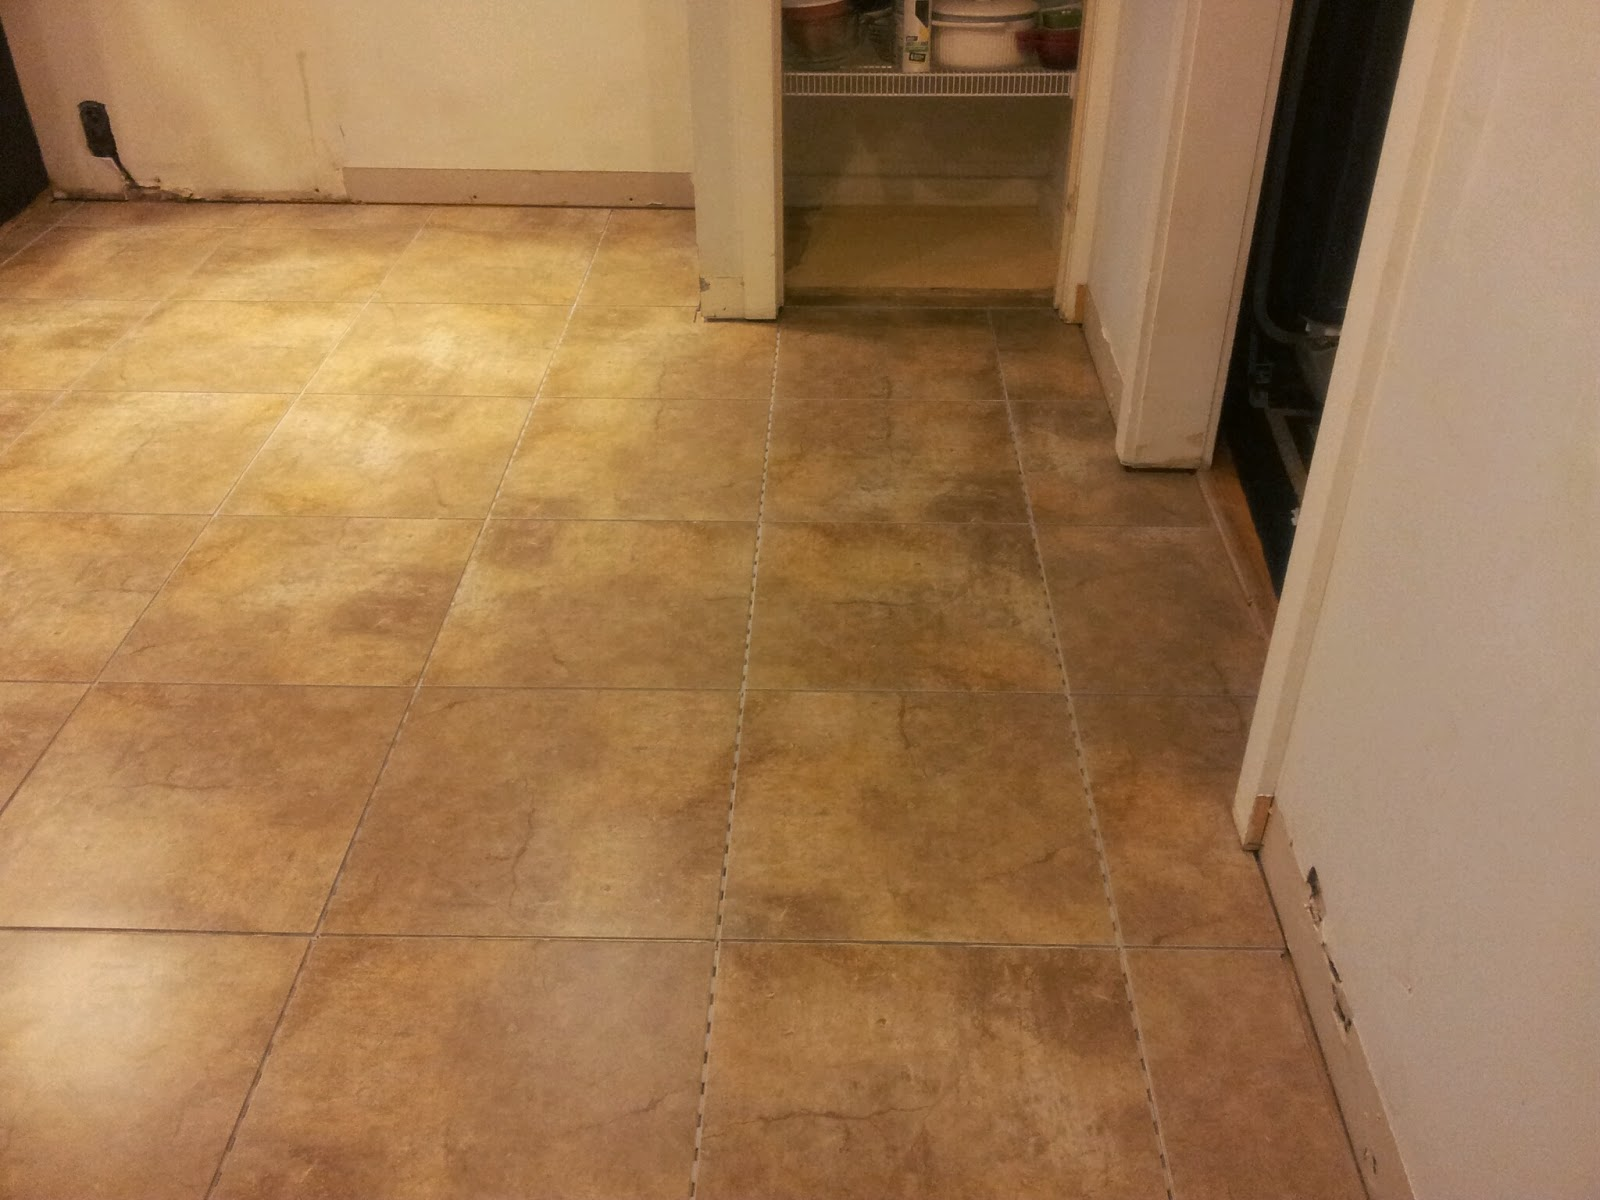 The Kitchen Floor From Another Angle Showing Pantry Area Again We Saw No Need To Tile Inside Since Will Be Installing More Shelving At